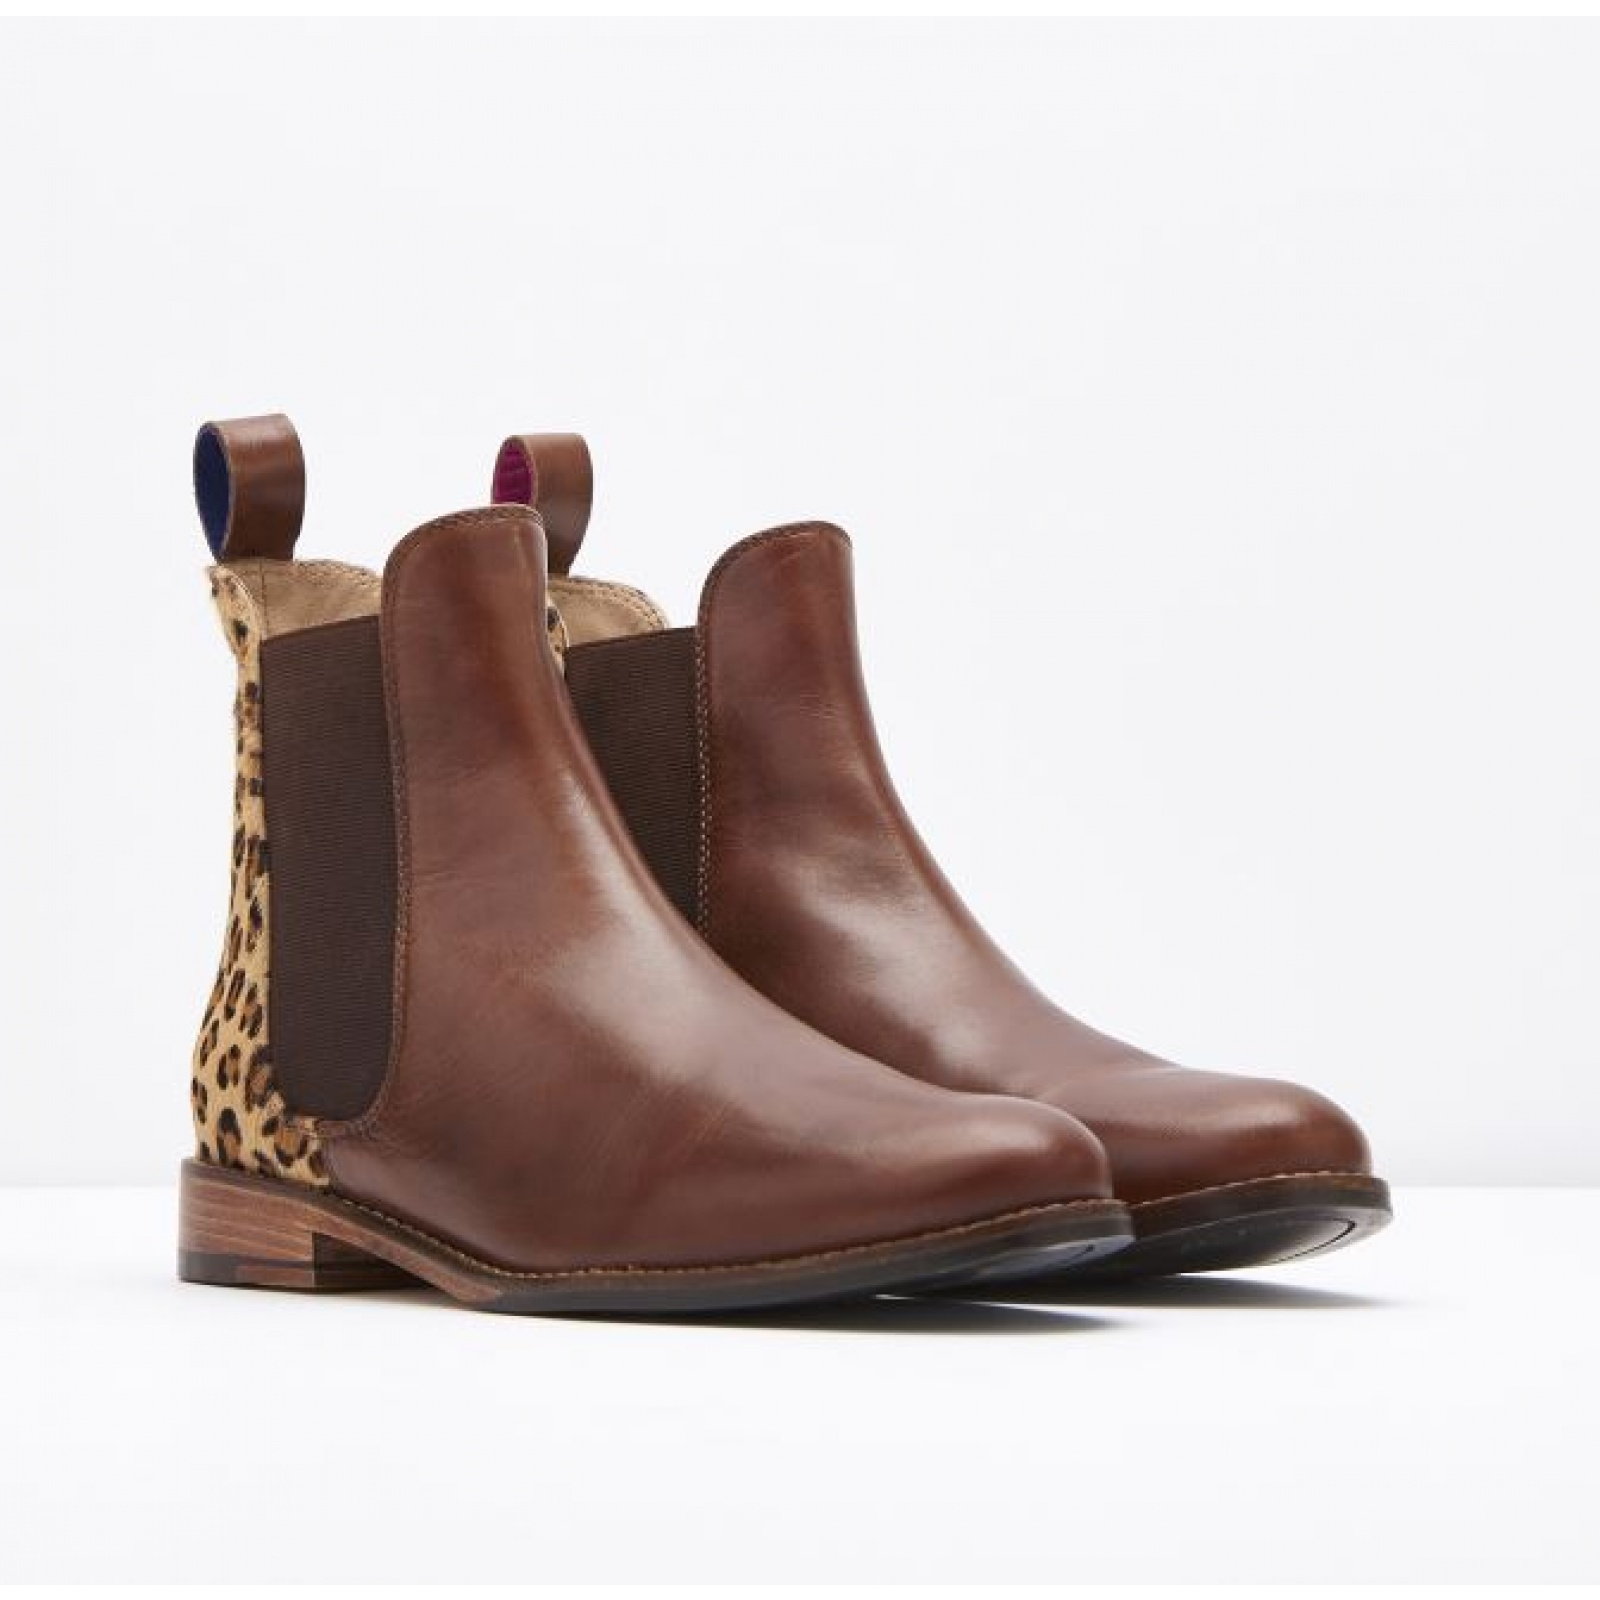 Joules-Westbourne-Premium-Leather-Chelsea-Boot-ALL-COLOURS miniature 11